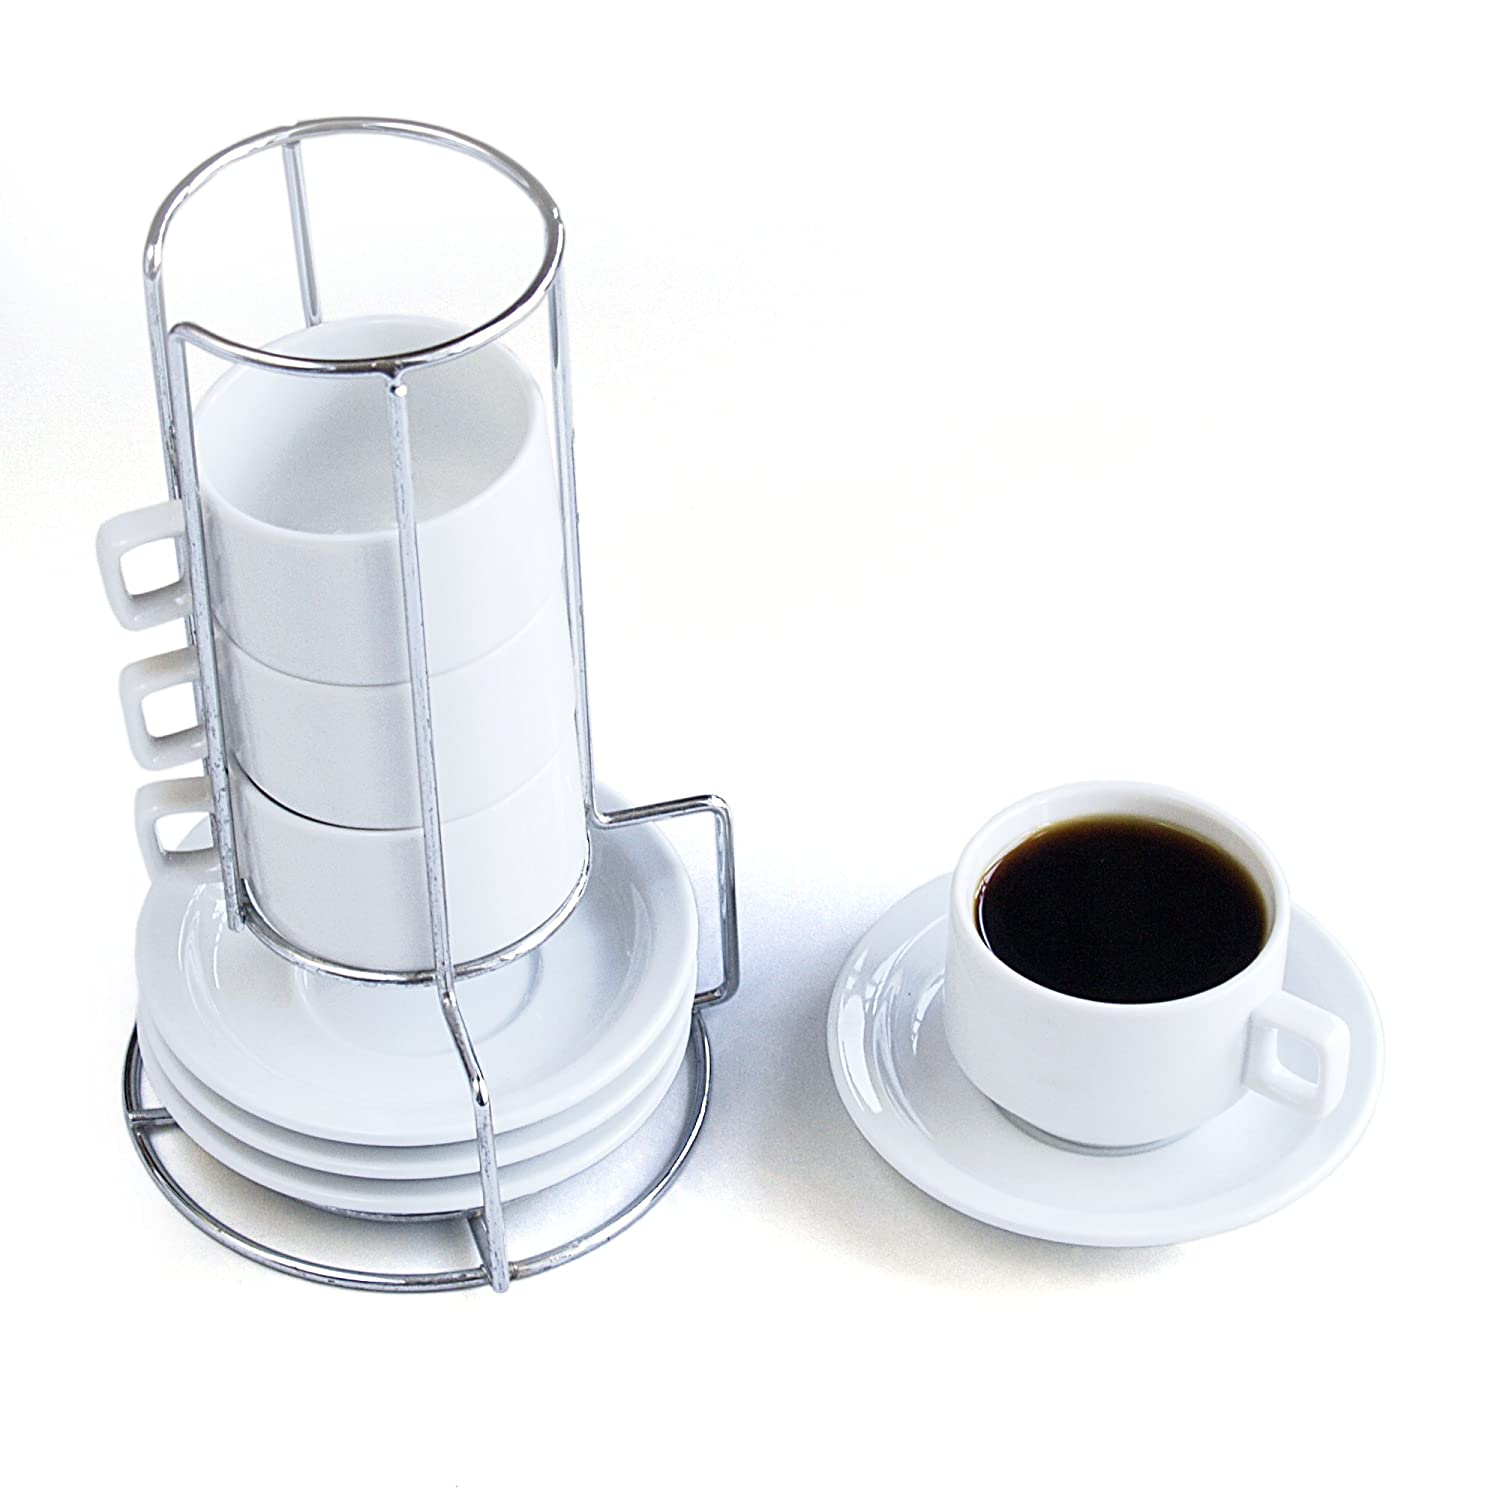 HIC 9-Piece Stackable Espresso Coffee Tea Set, Fine White Porcelain 4-Ounce Cups